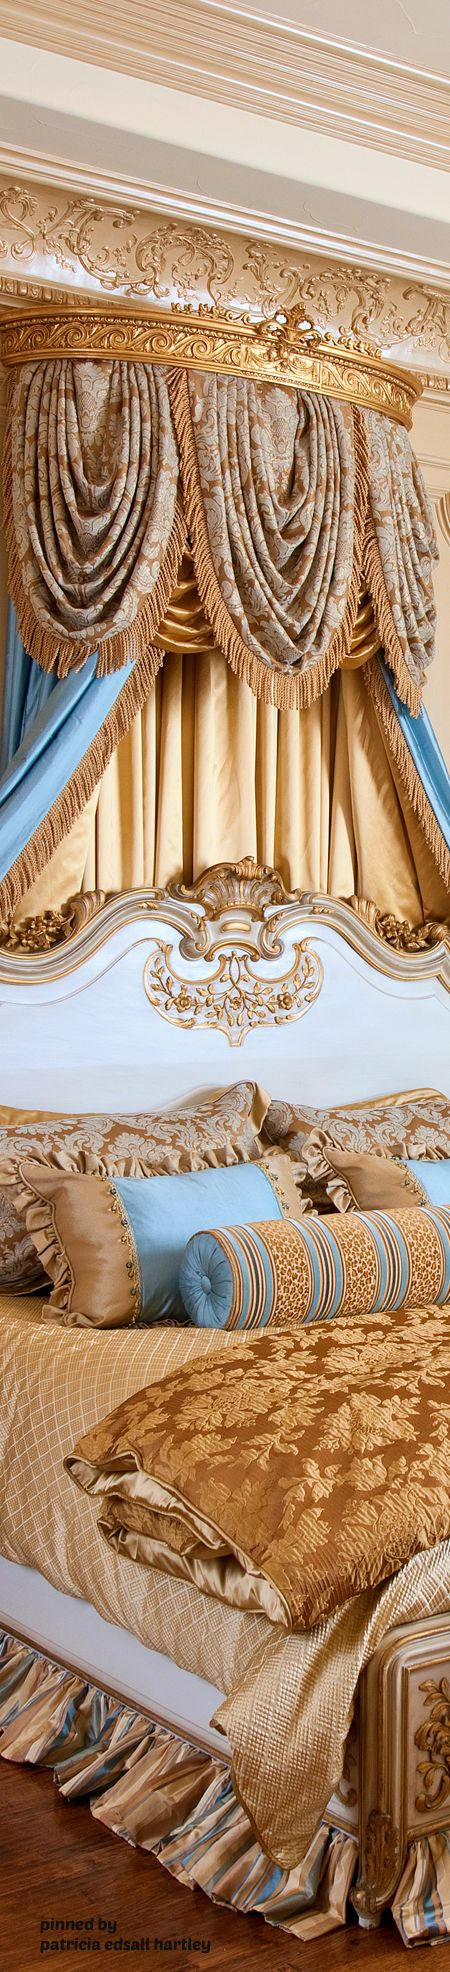 Opulent traditional bedroom.  DesignNashville.com offers luxury opulent bedding shipping to all locations.